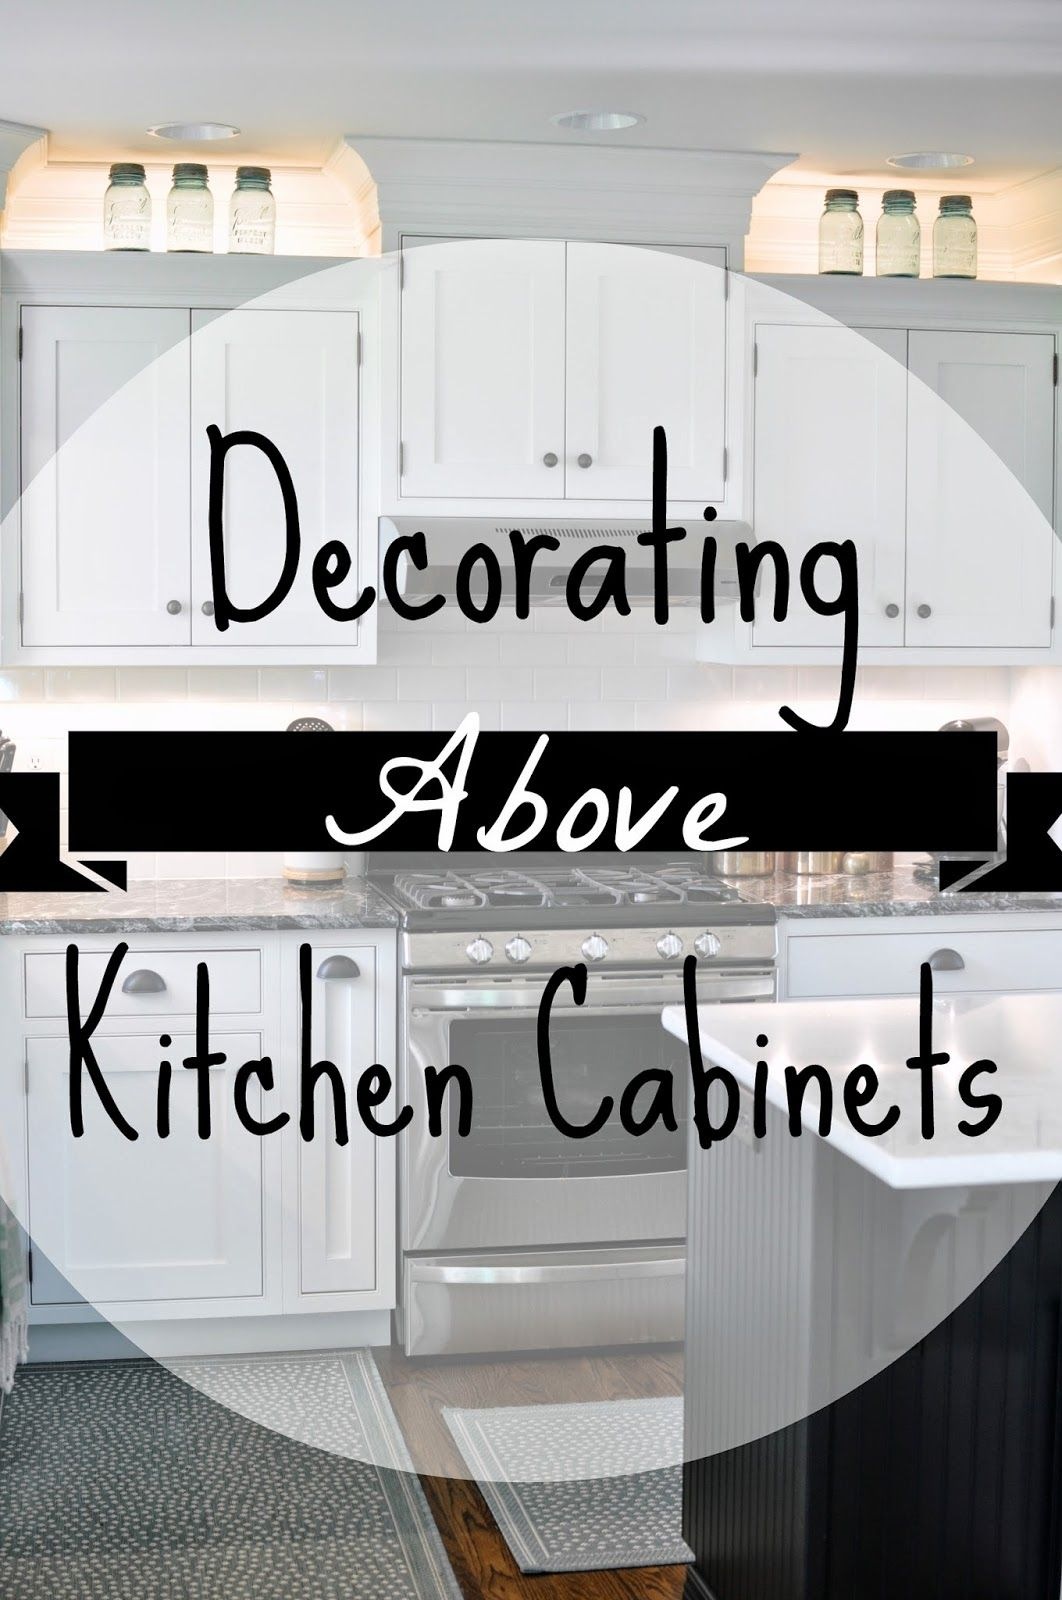 Ideas For Decorating Above Kitchen Cabinets From The Blog In 2019